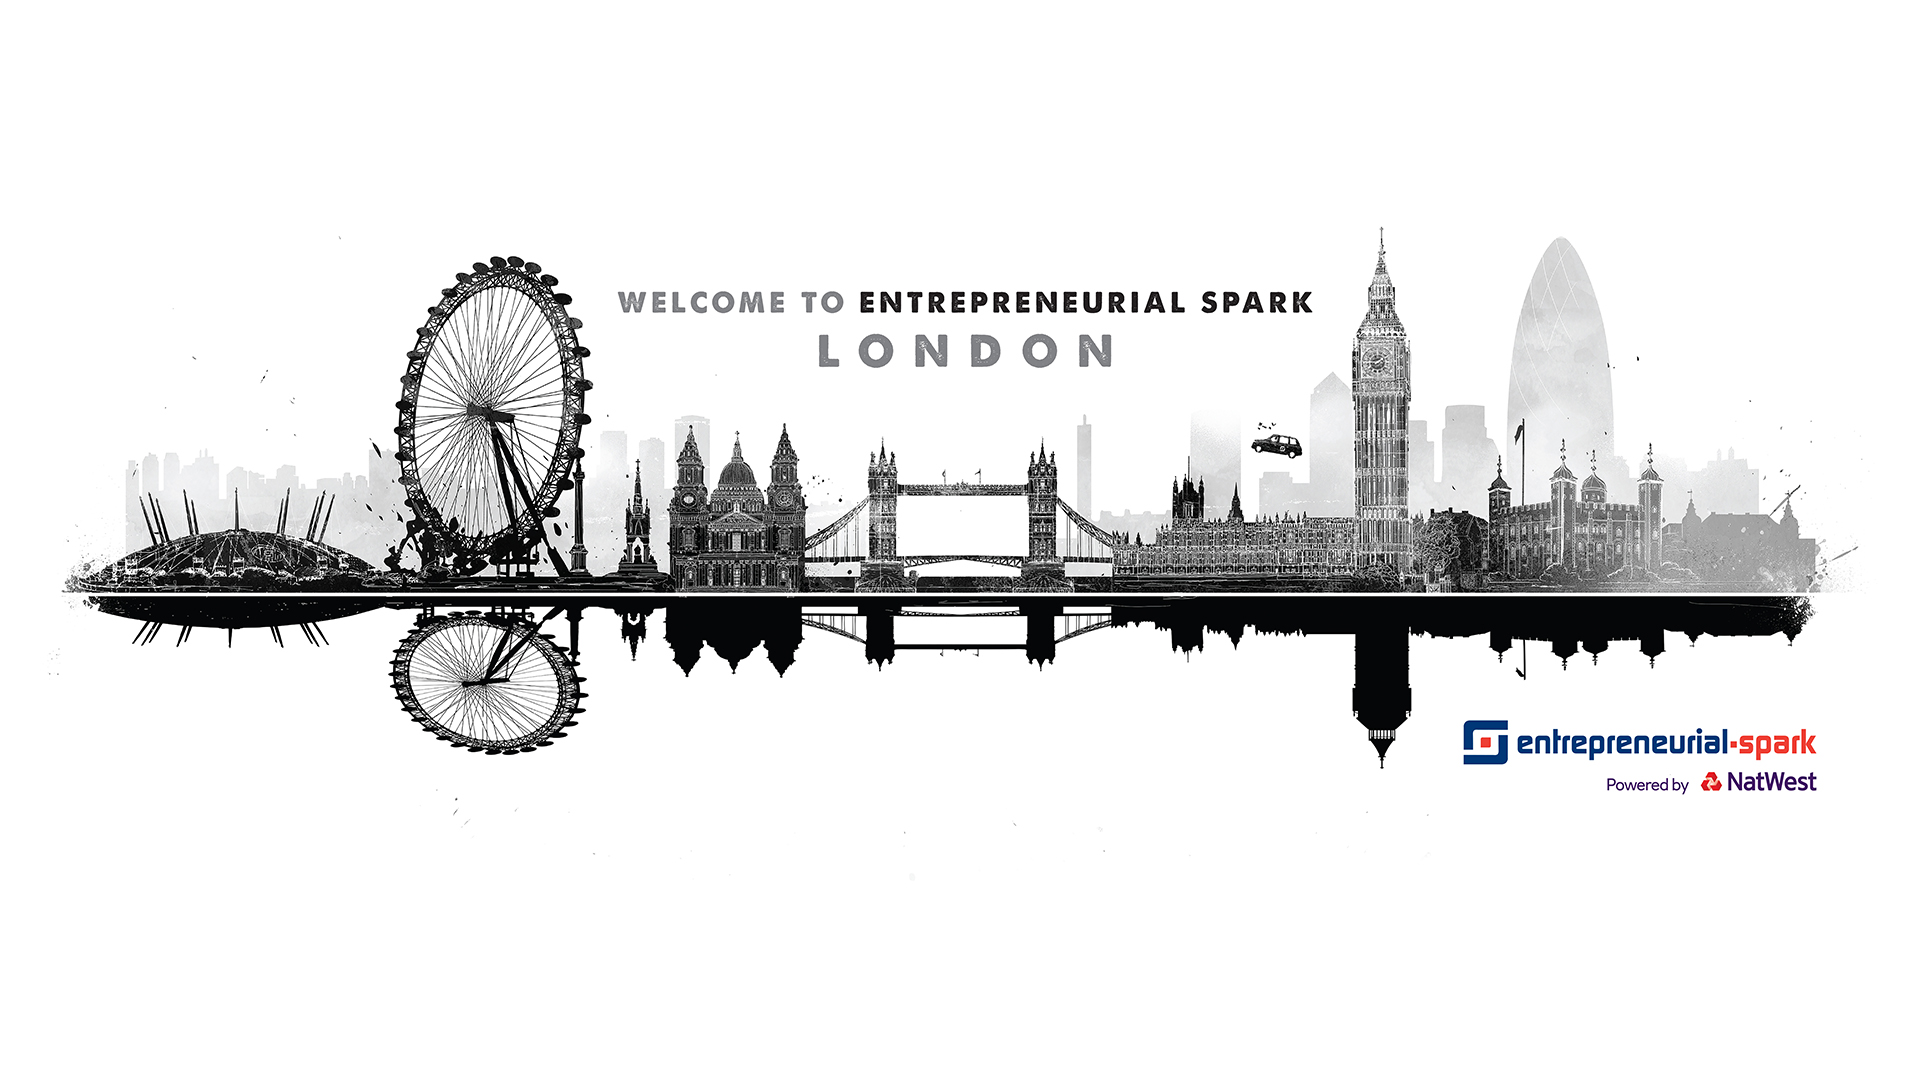 Welcome to Entrepreneurial Spark London